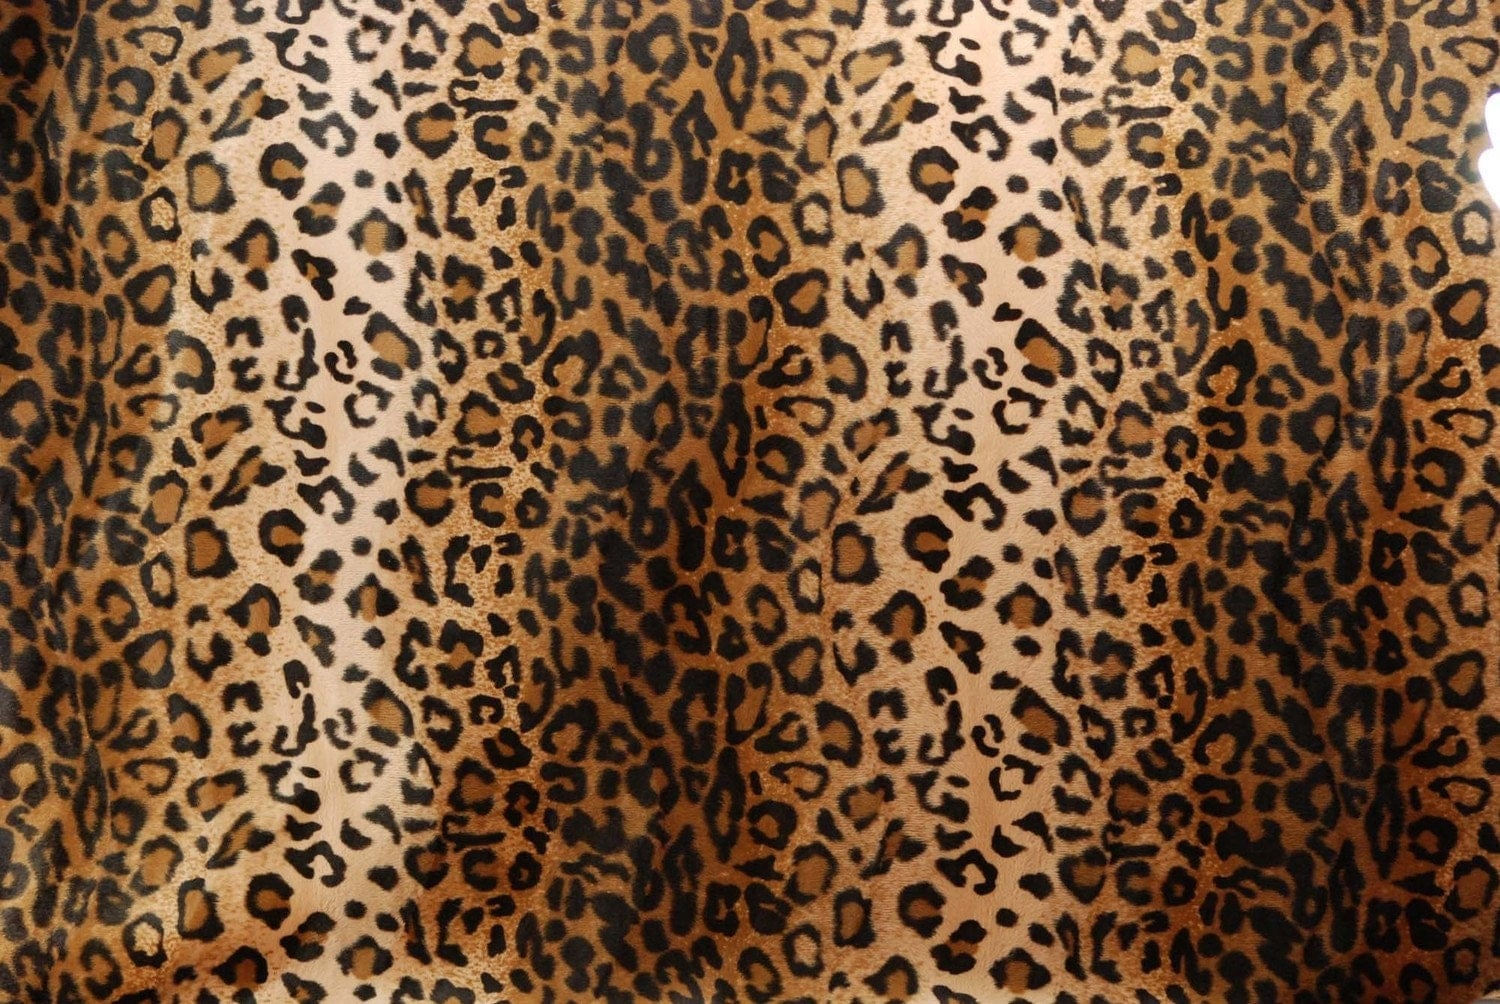 Leopard Print Fabric leopard print faux fur fabric excellent quality 2 yards